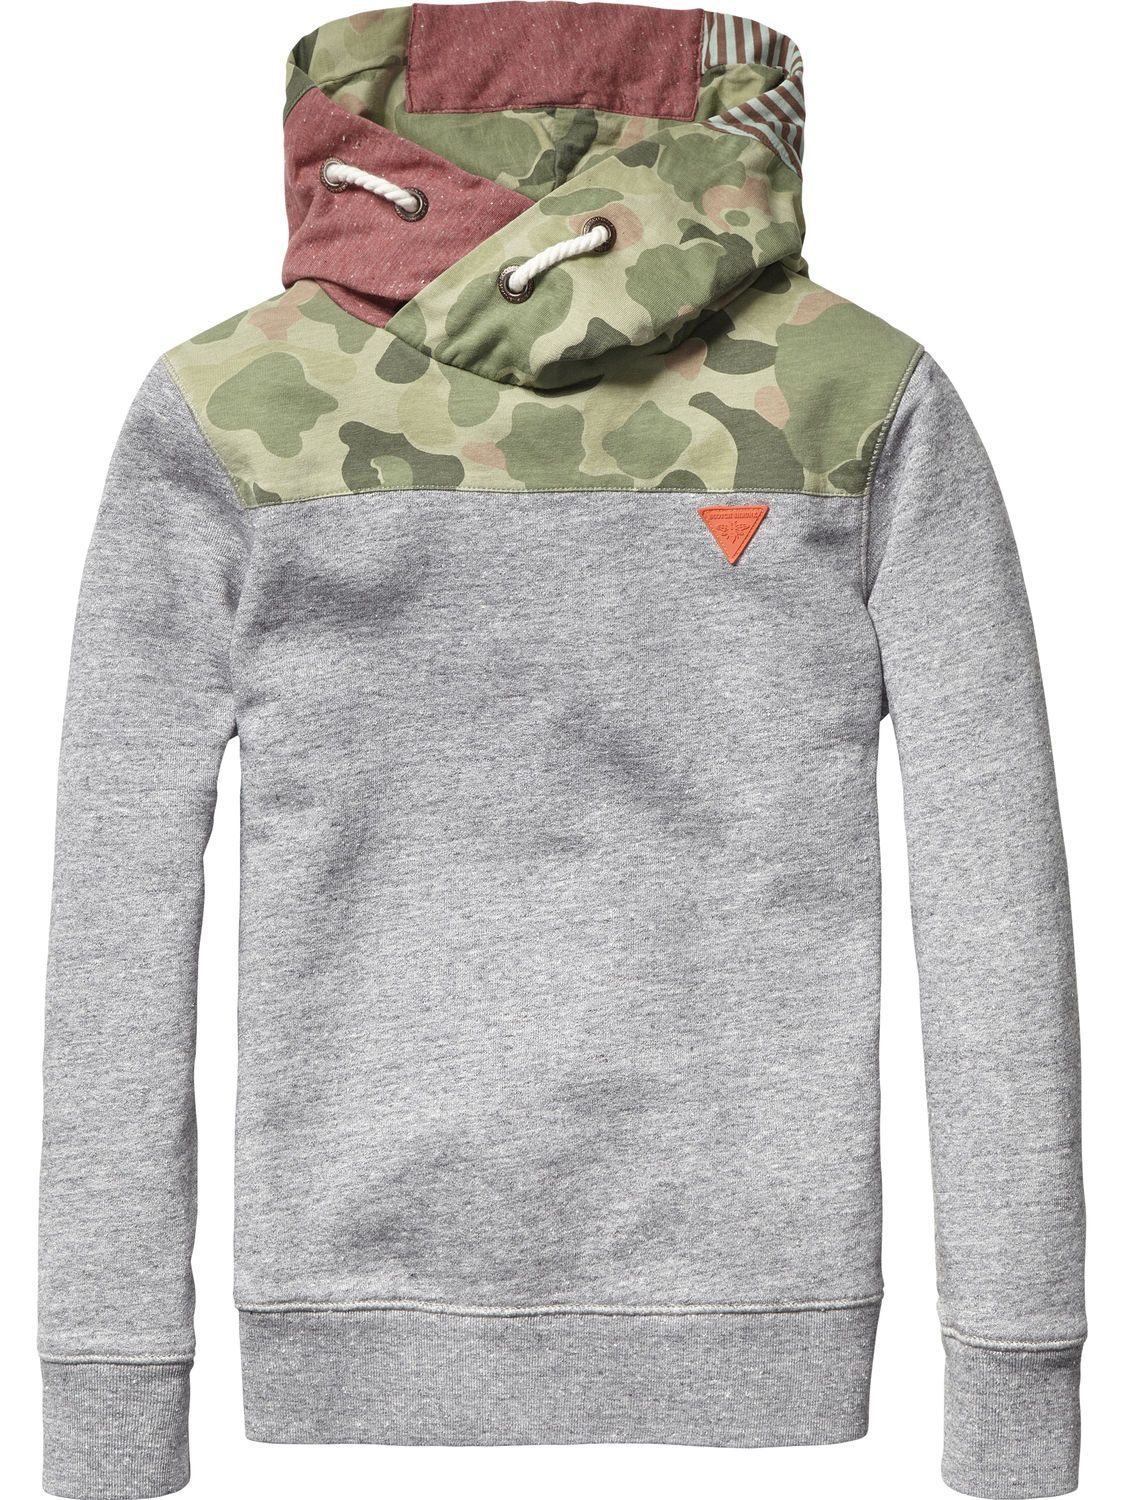 Patchwork Hooded Sweater | Sweat | Boy\'s Clothing at Scotch & Soda ...